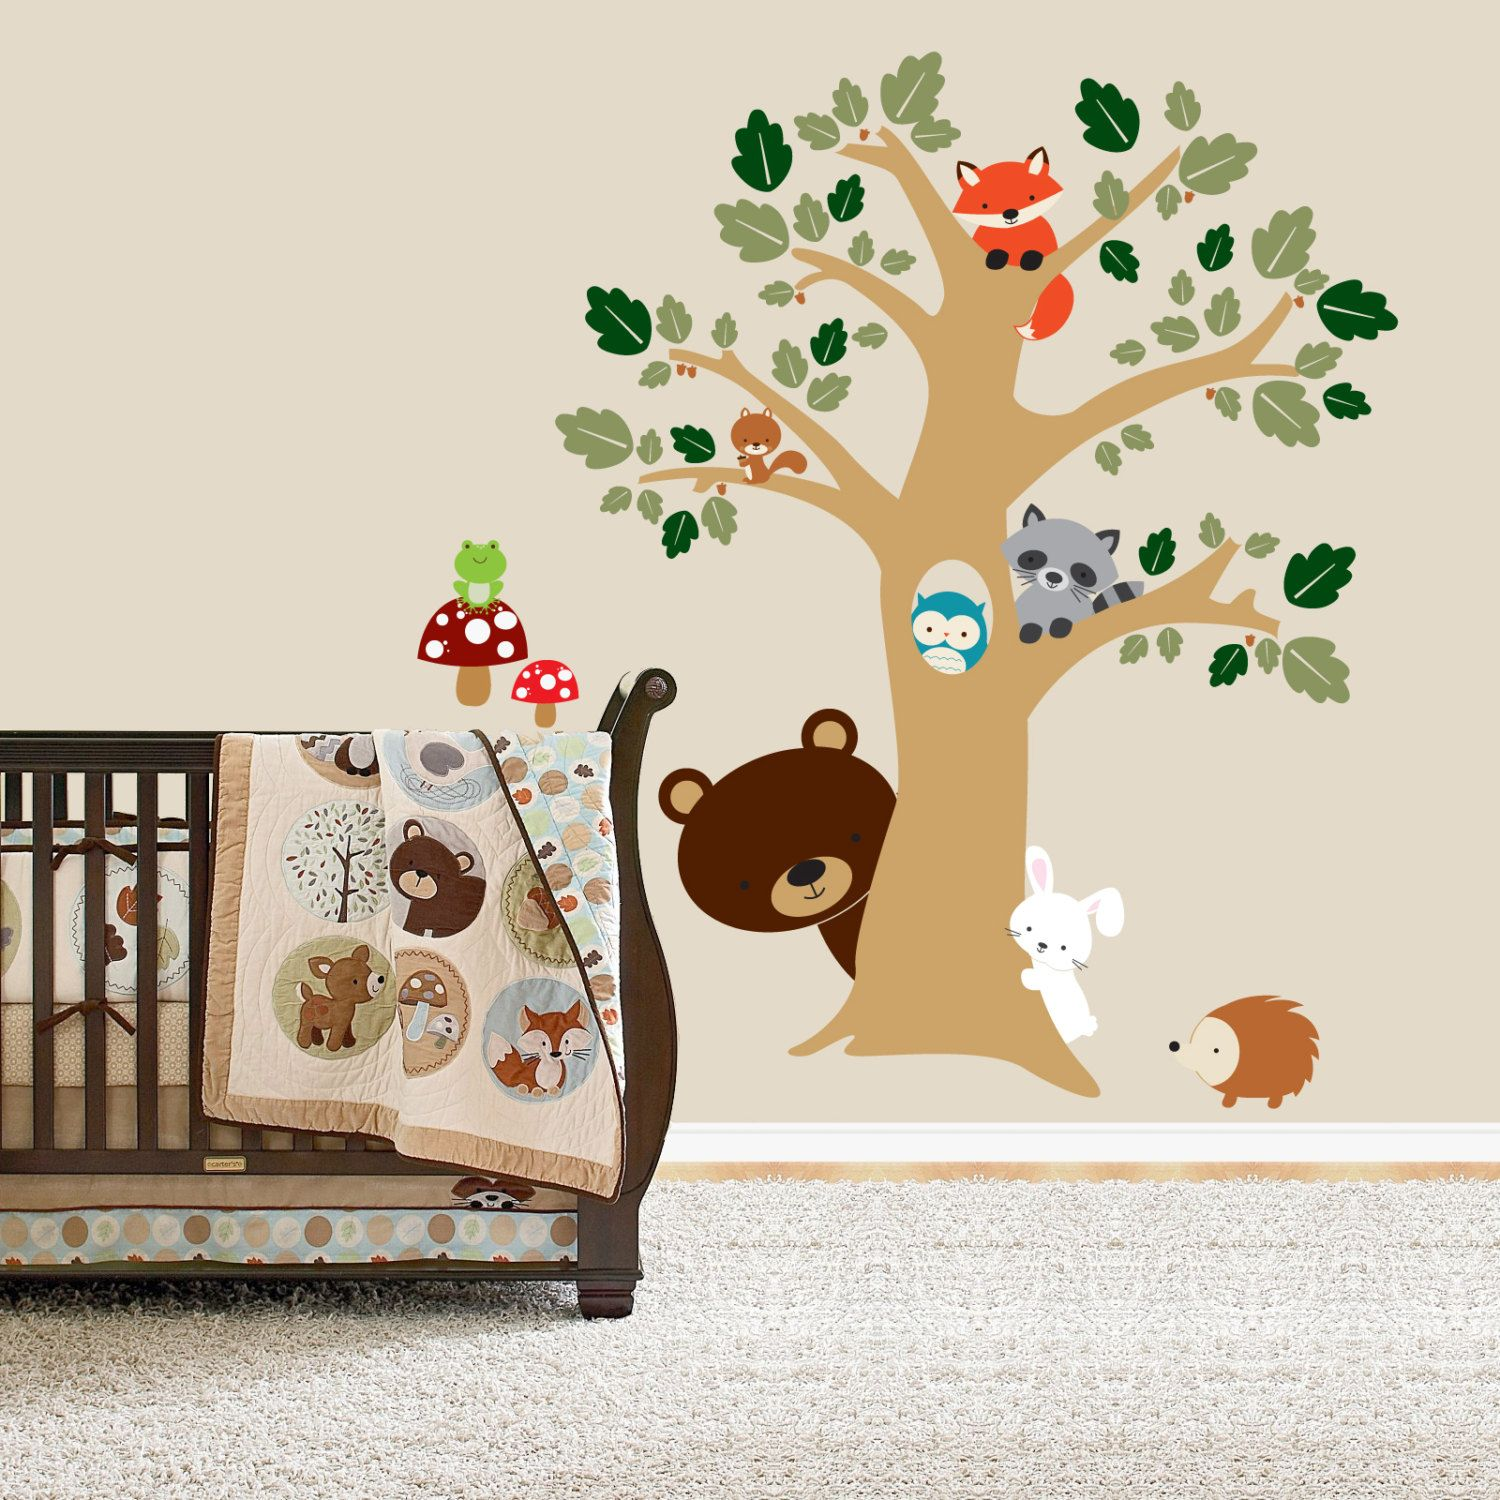 Forest Friends Room Peek A Boo Tree Woodland Animals Decal